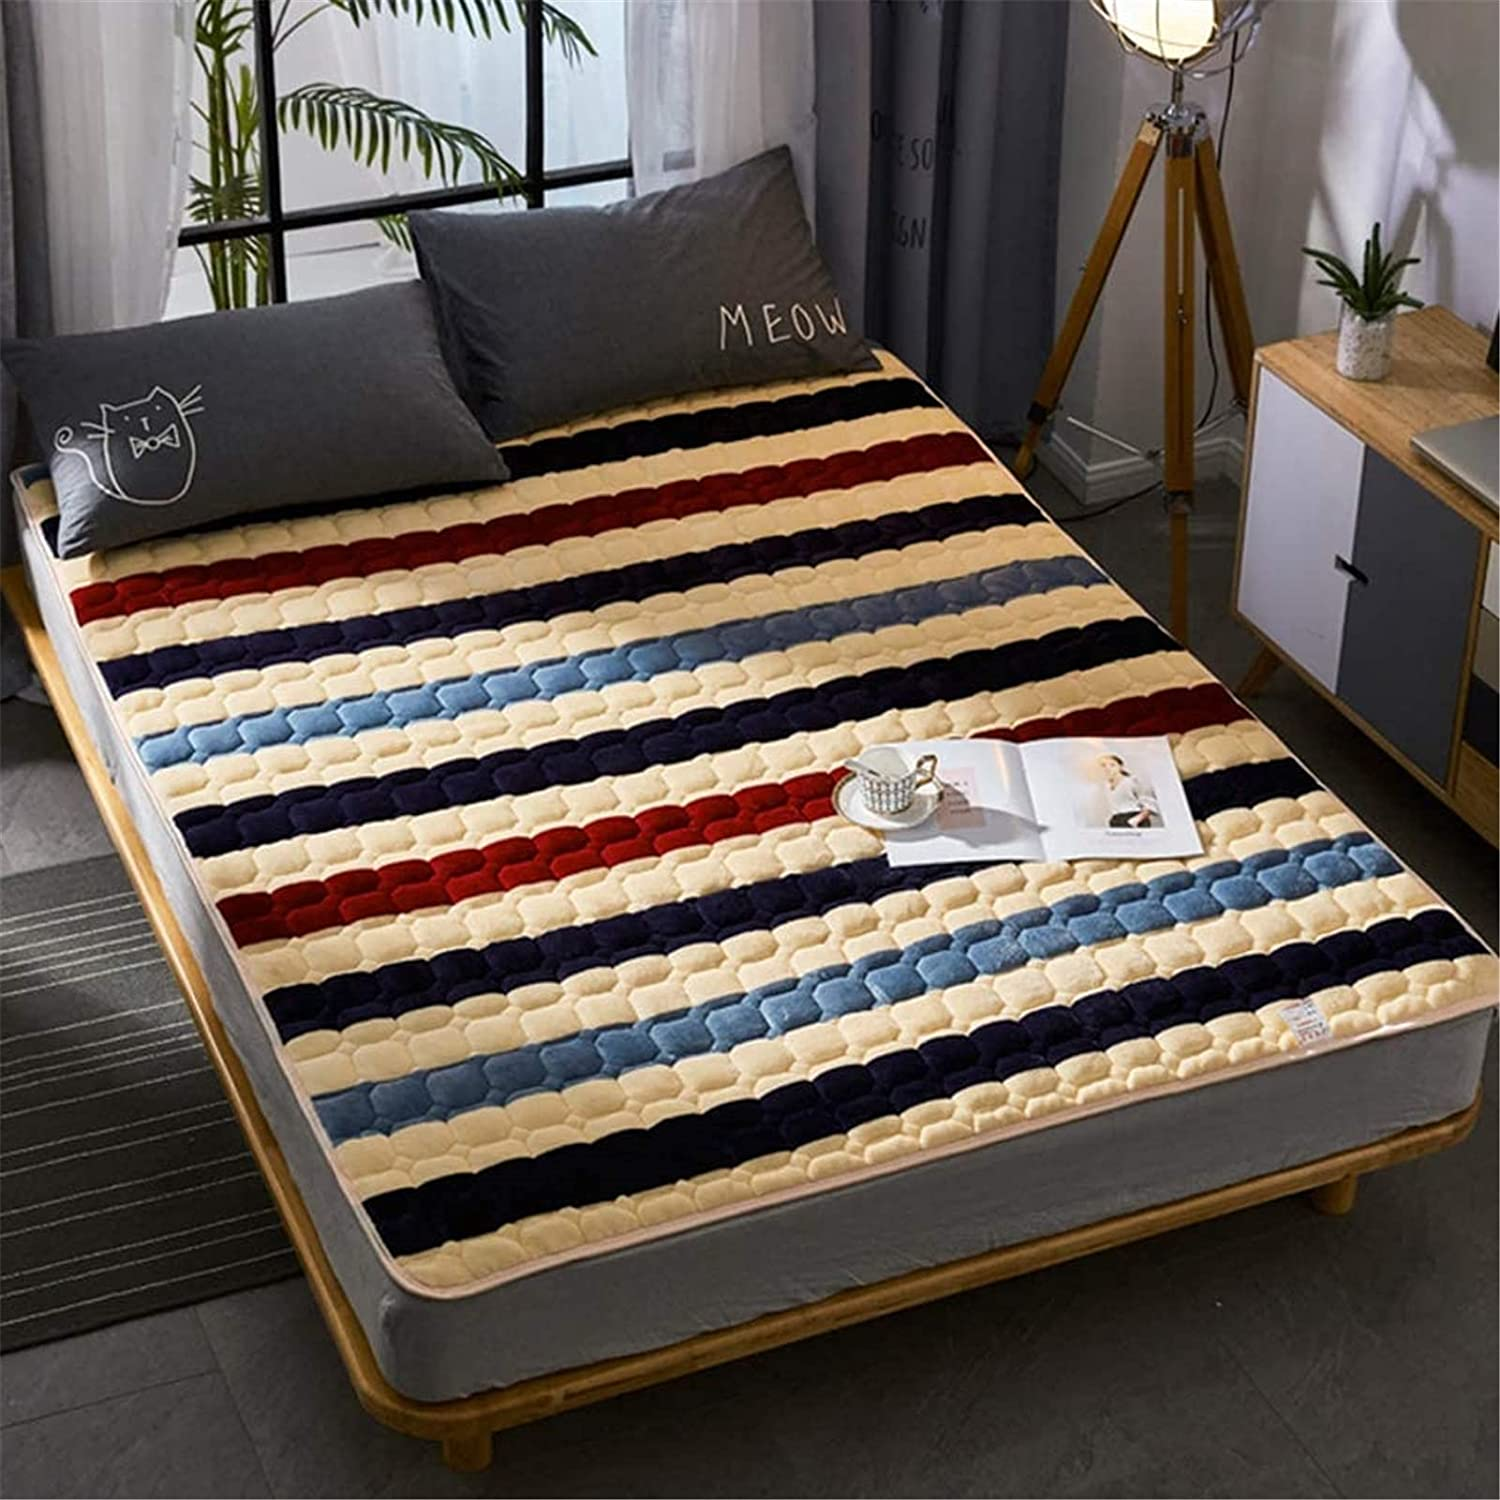 DevileLover Japanese Tatami Limited price sale Futon Pa Foldable Year-end annual account Mattress